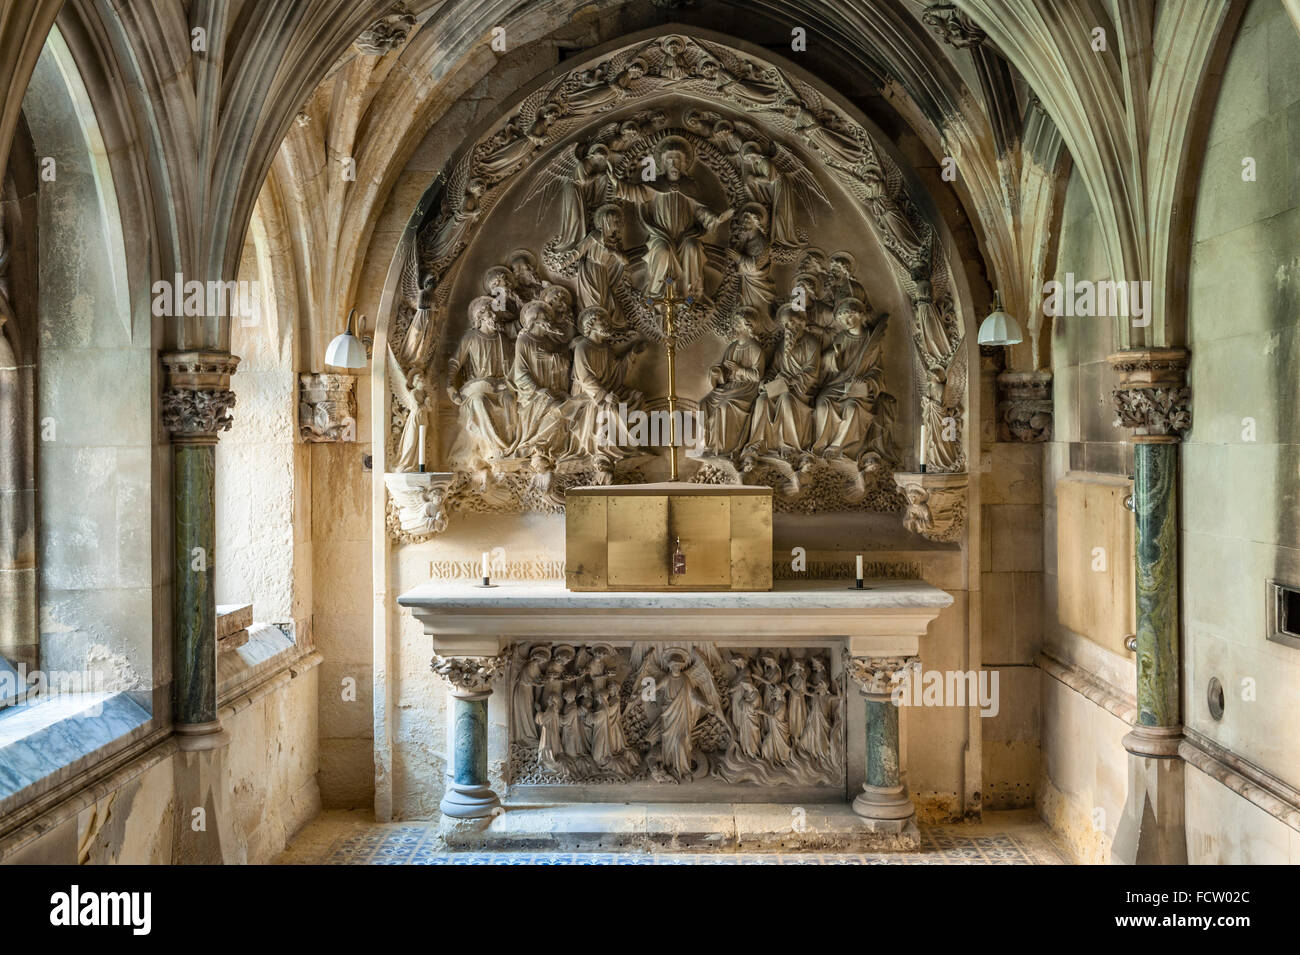 a now redundant Catholic seminary. The Mortuary Chapel - Stock Image